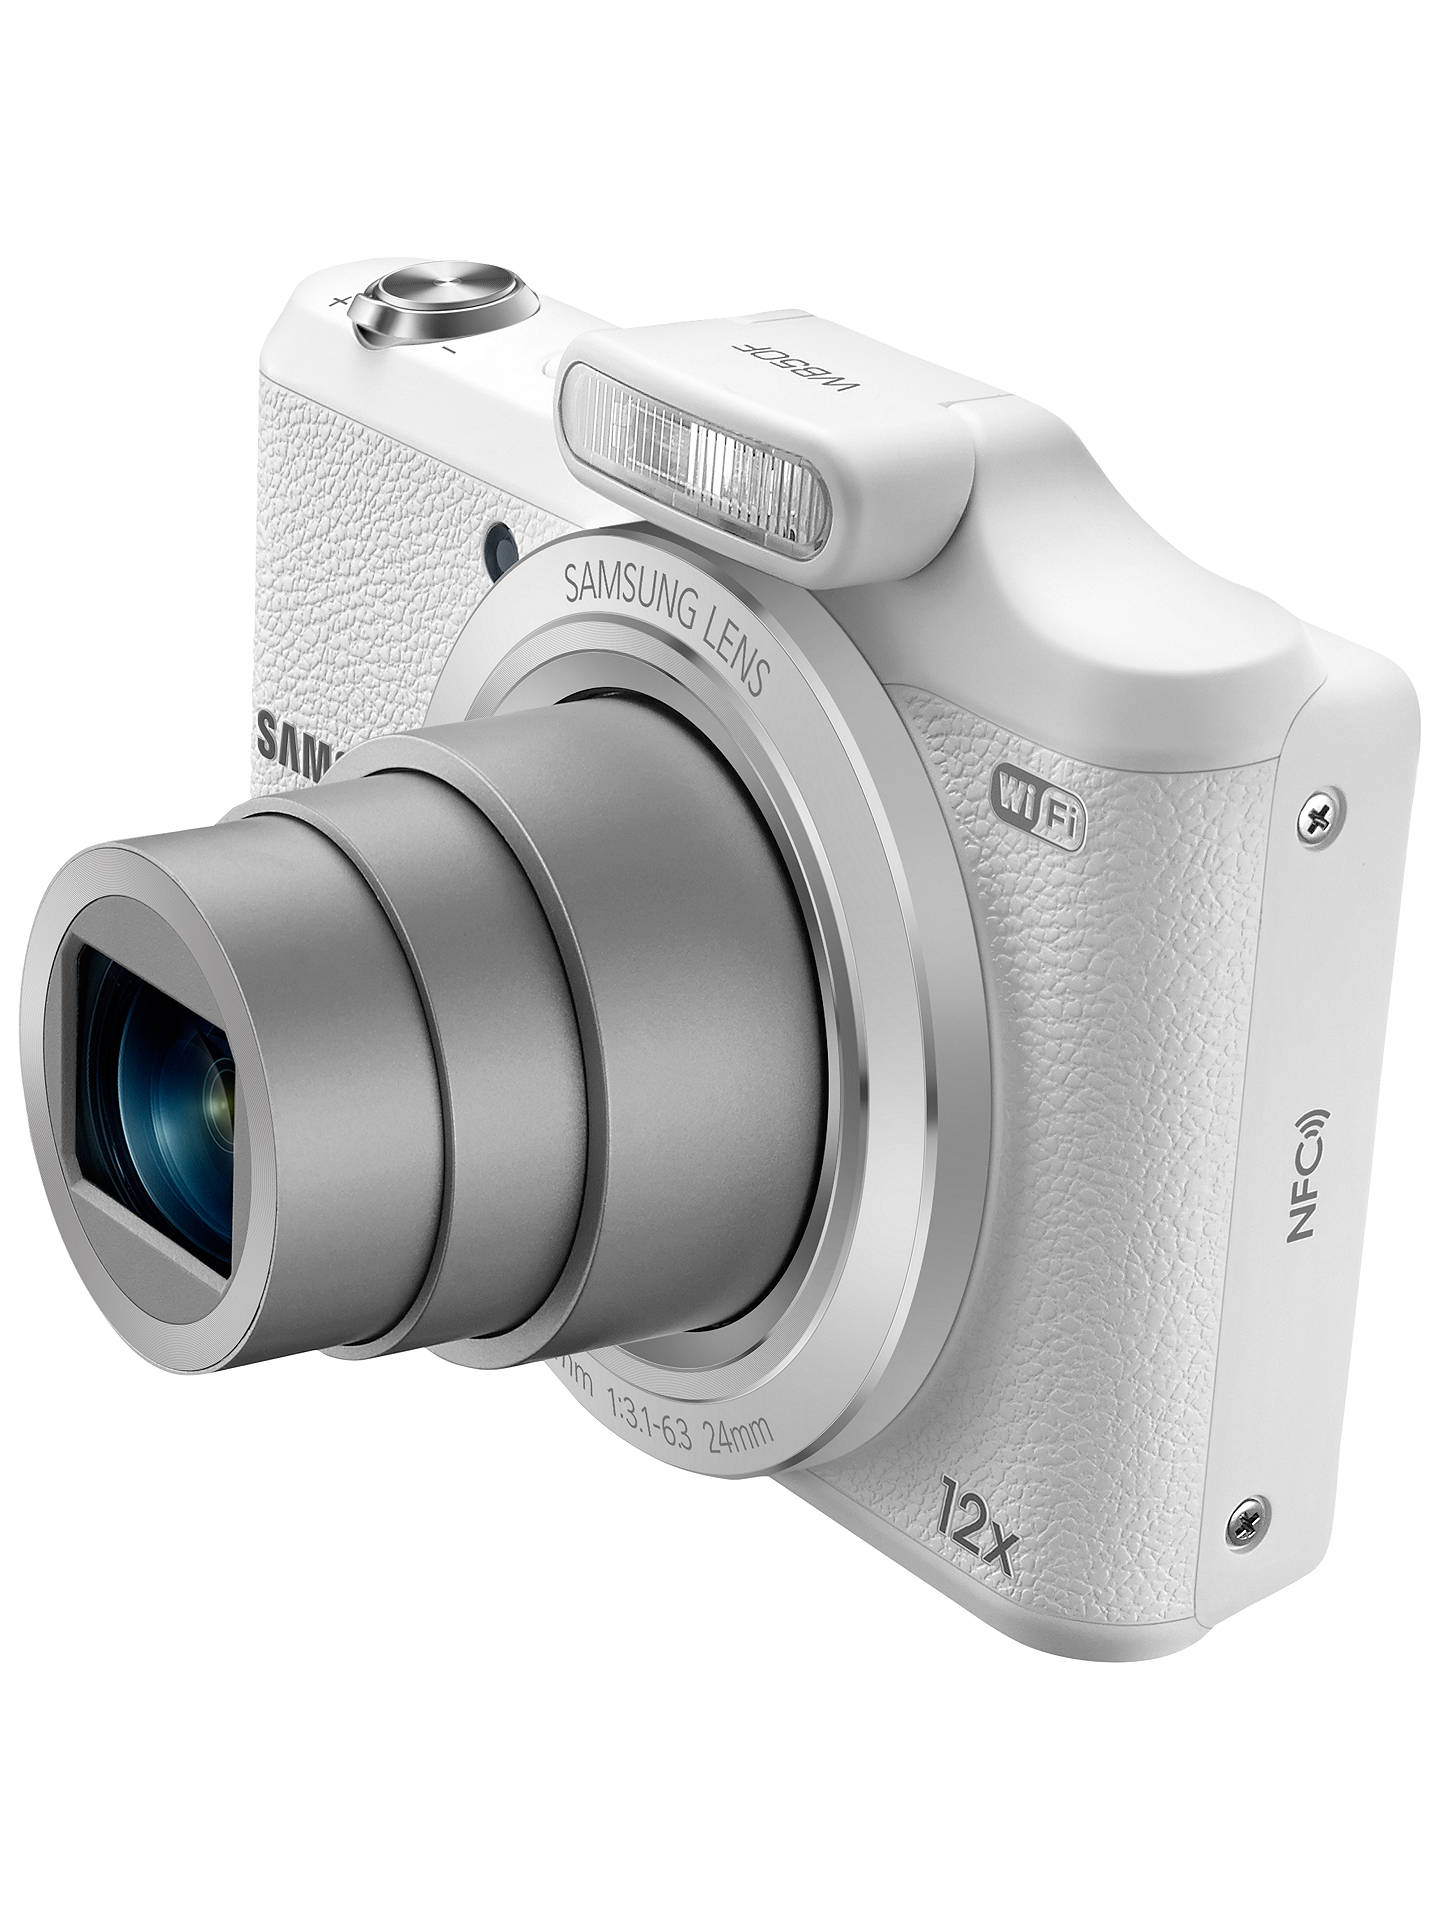 Samsung WB50F Digital Camera, HD 720p, 16MP, 12x Optical